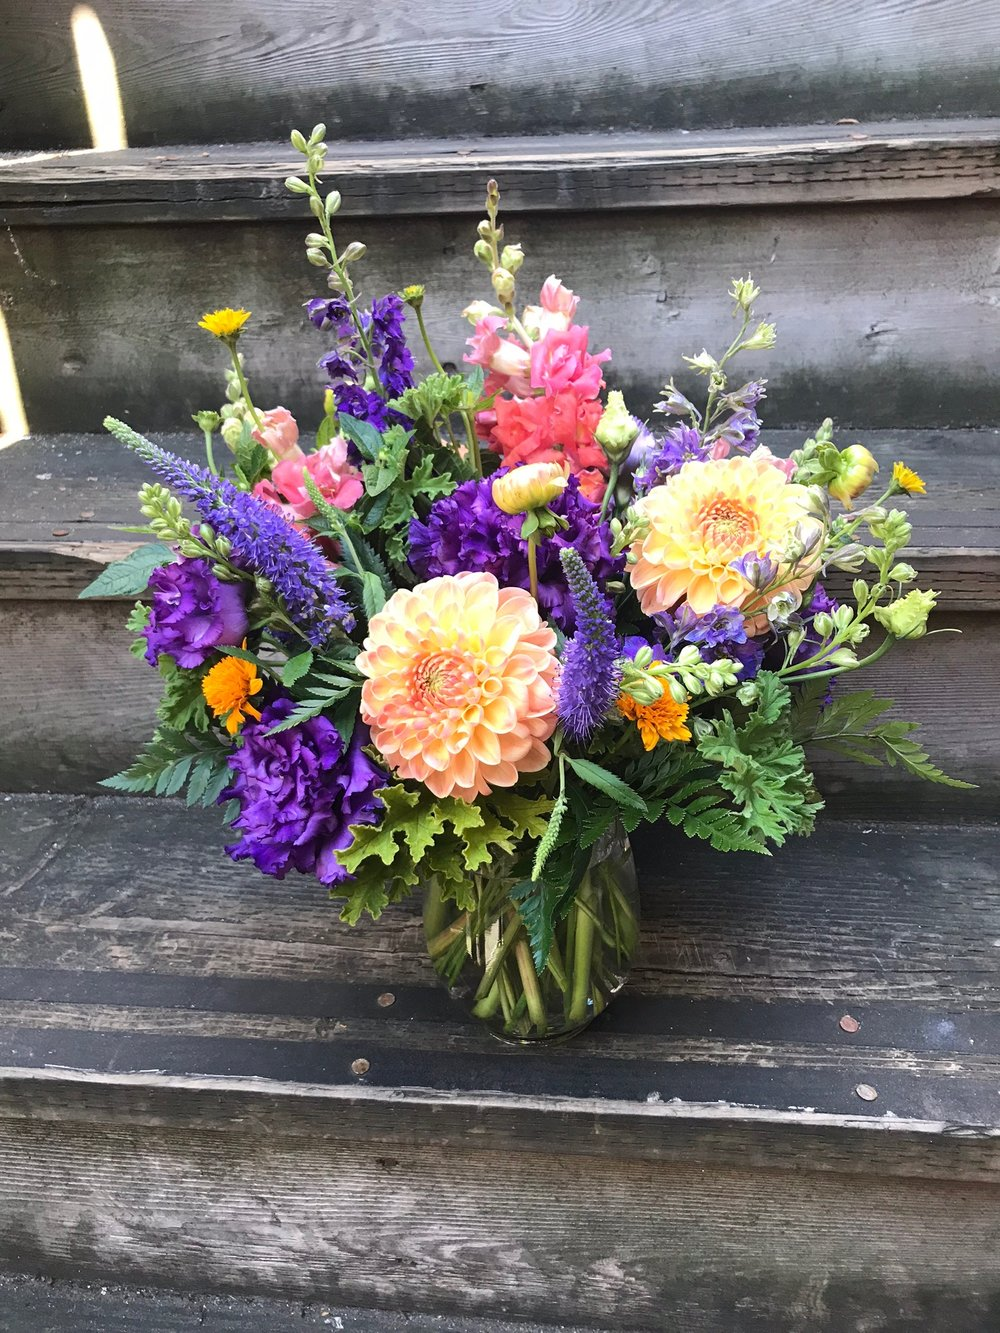 3. Purple and Peach summer bouquet